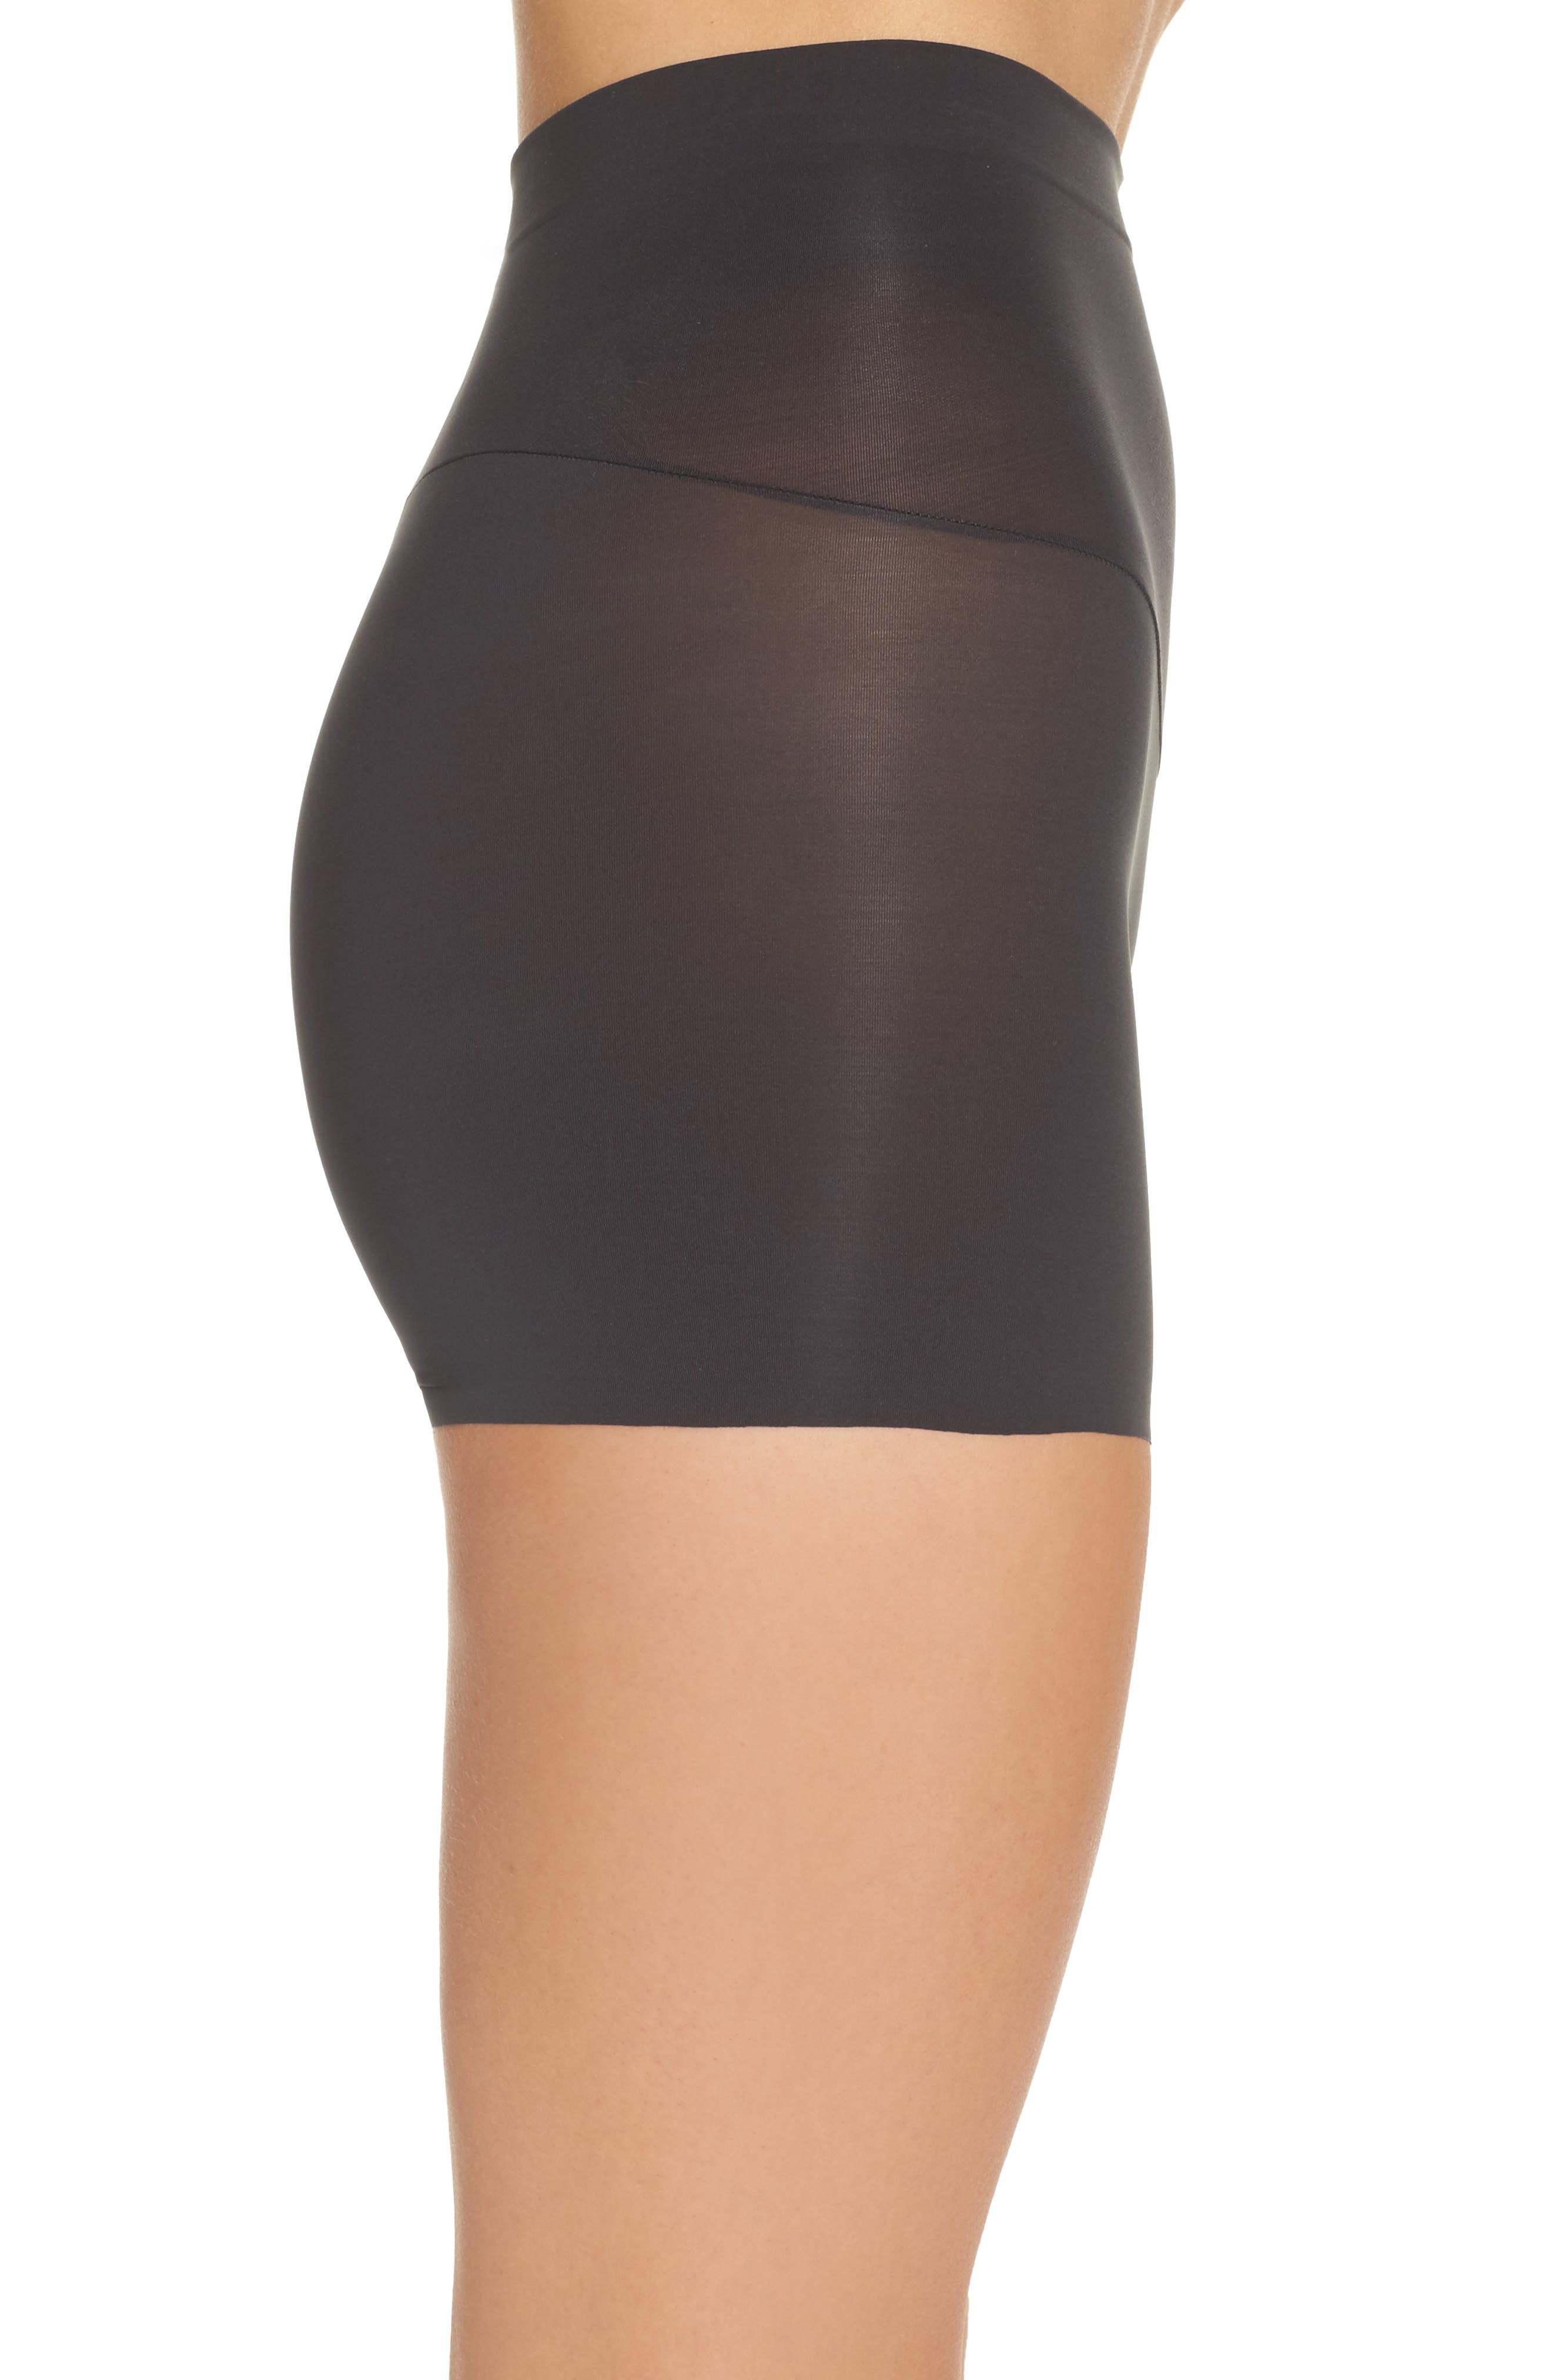 Shape My Day Girl Shorts,                             Alternate thumbnail 3, color,                             Black